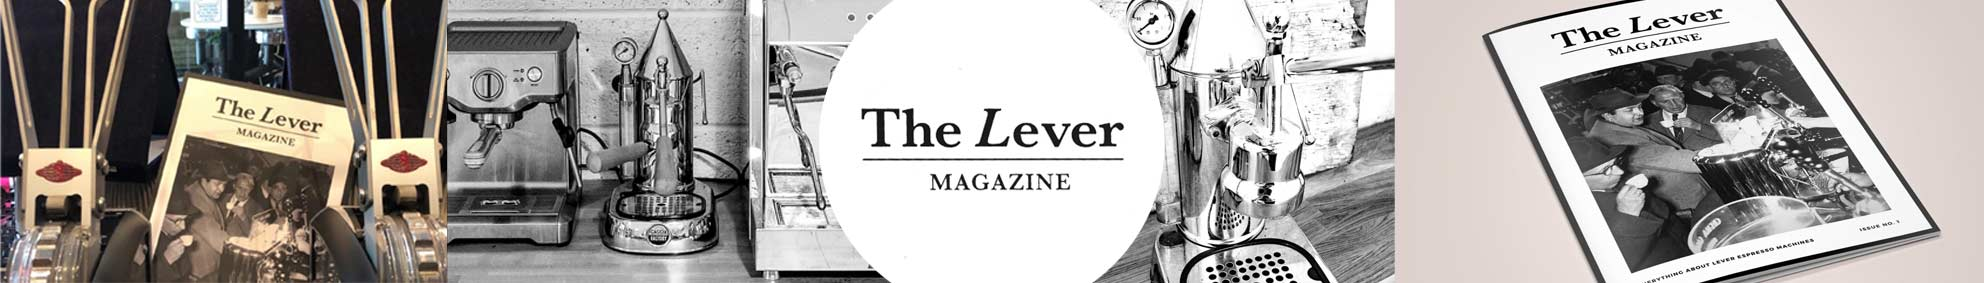 The Lever Magaine on UK Best Online Coffee Shop